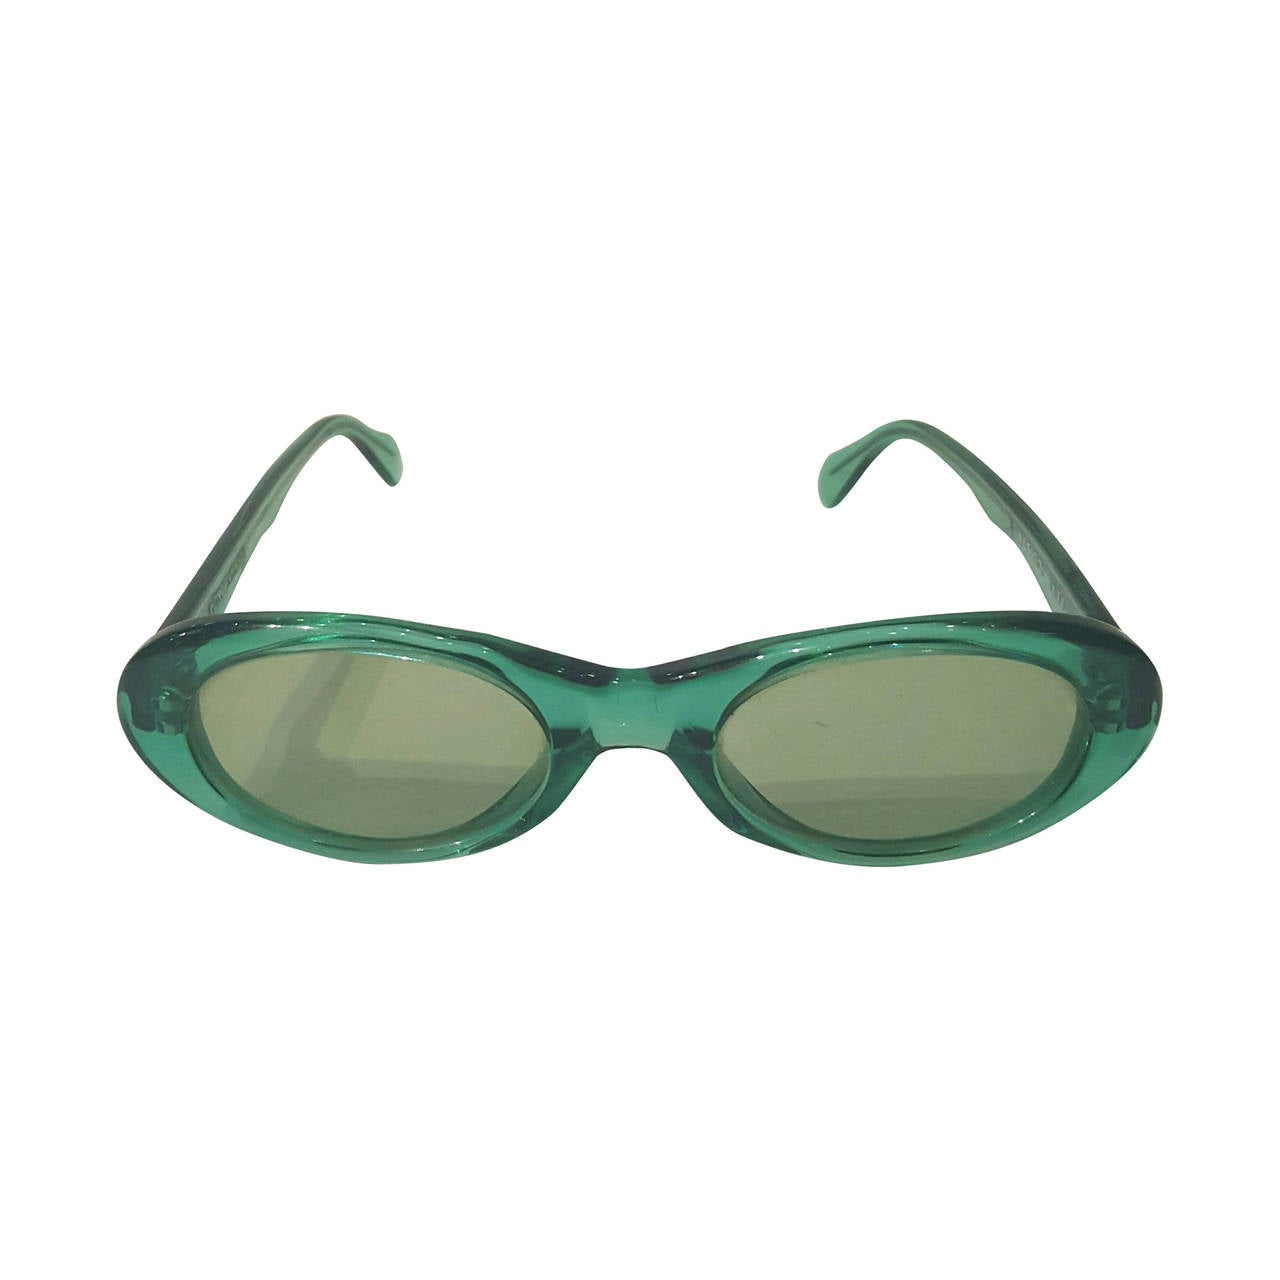 1980s Sonia Rykiel green sunglasses 1